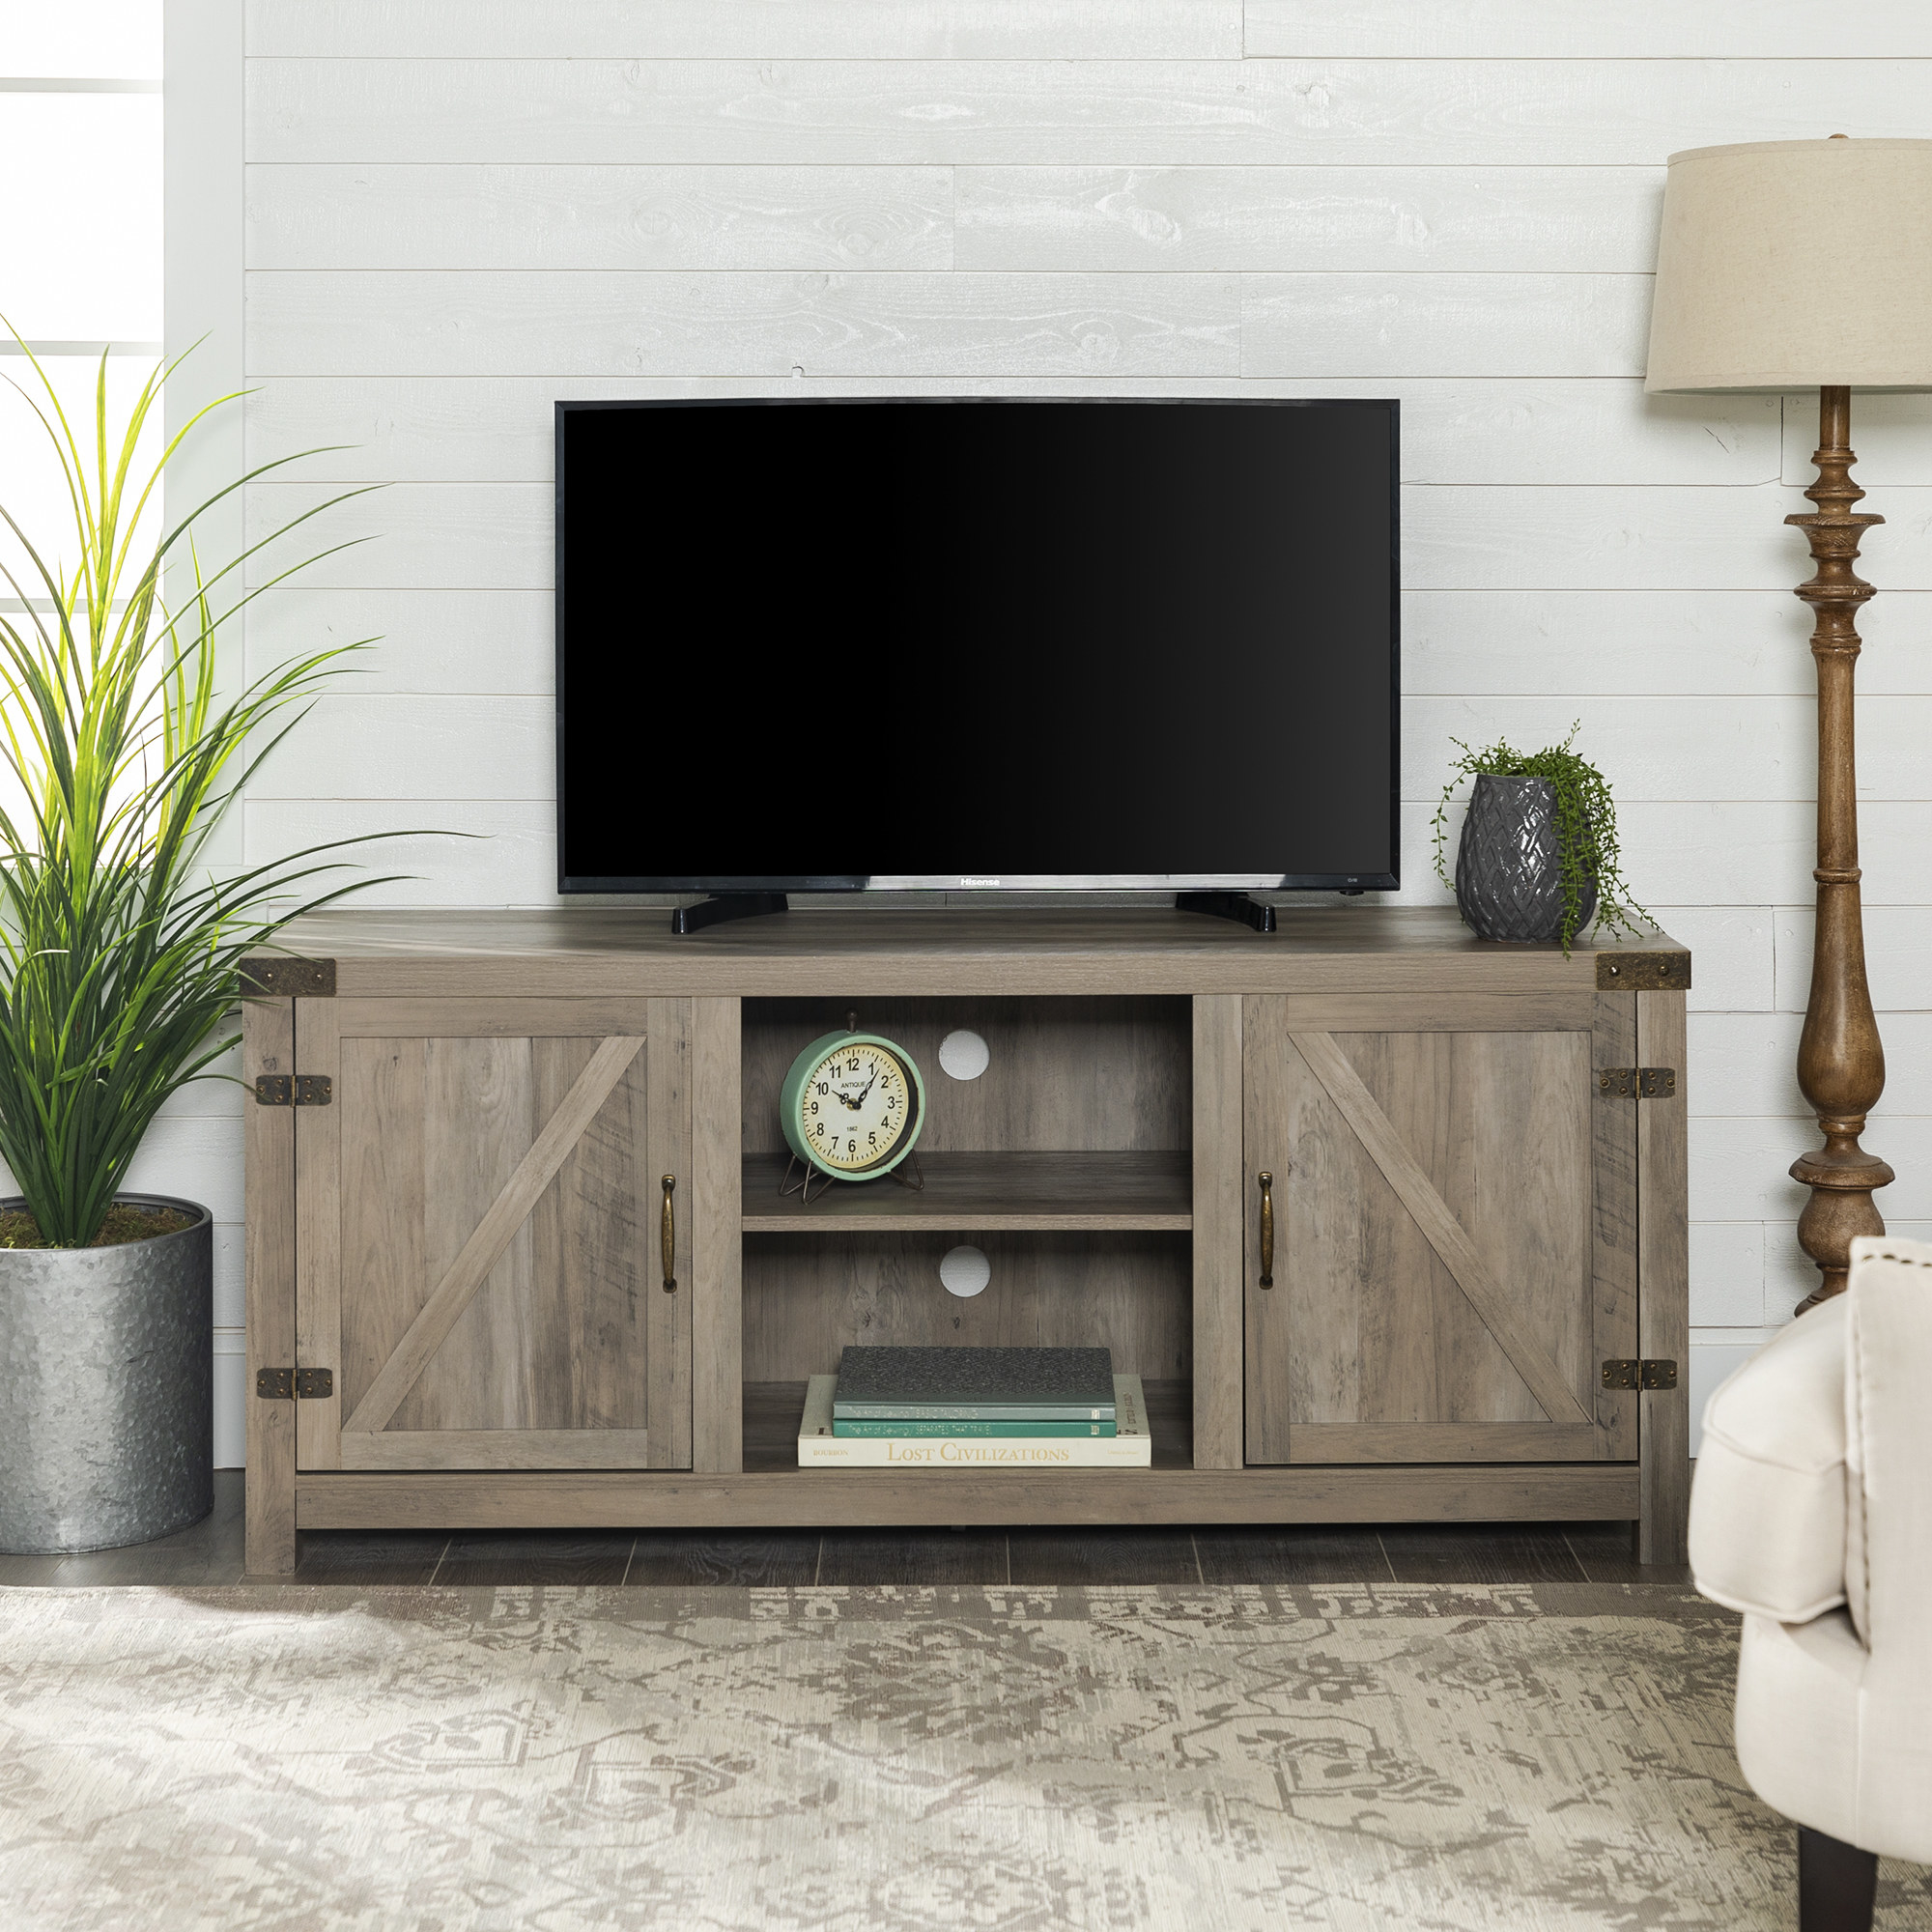 Farmhouse barn door tv stand in gray